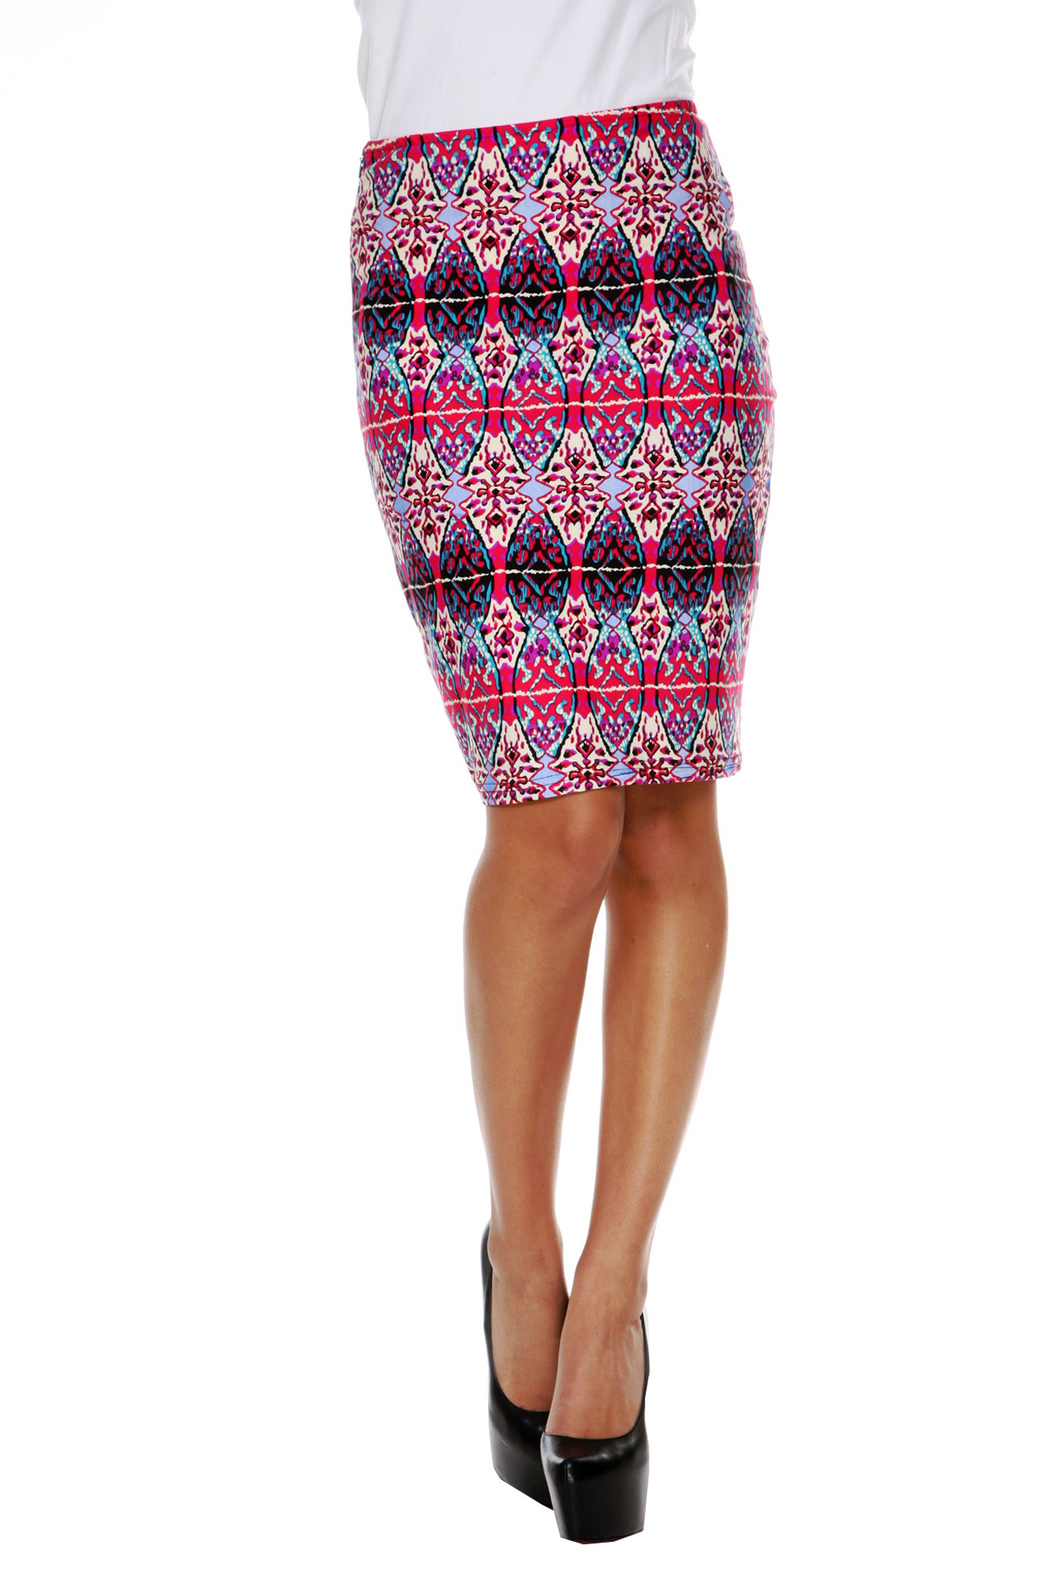 WhiteMark White Mark's Geometric Print Pencil Skirt - Front Cropped Image